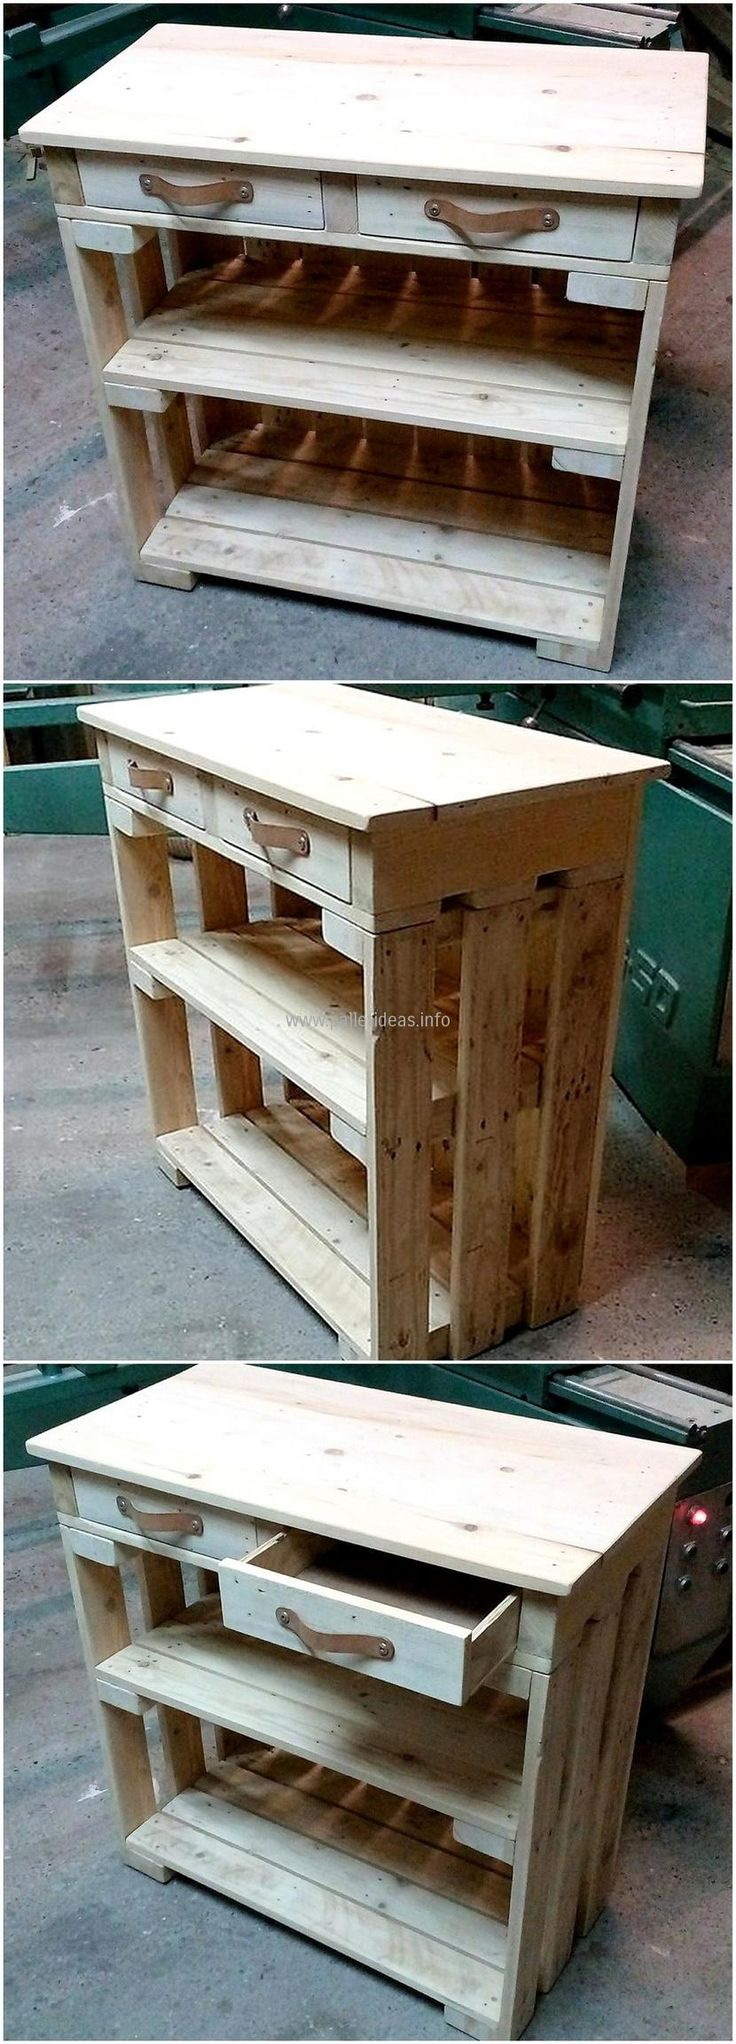 Charming Ideas for Wooden Pallet Creations Handmade